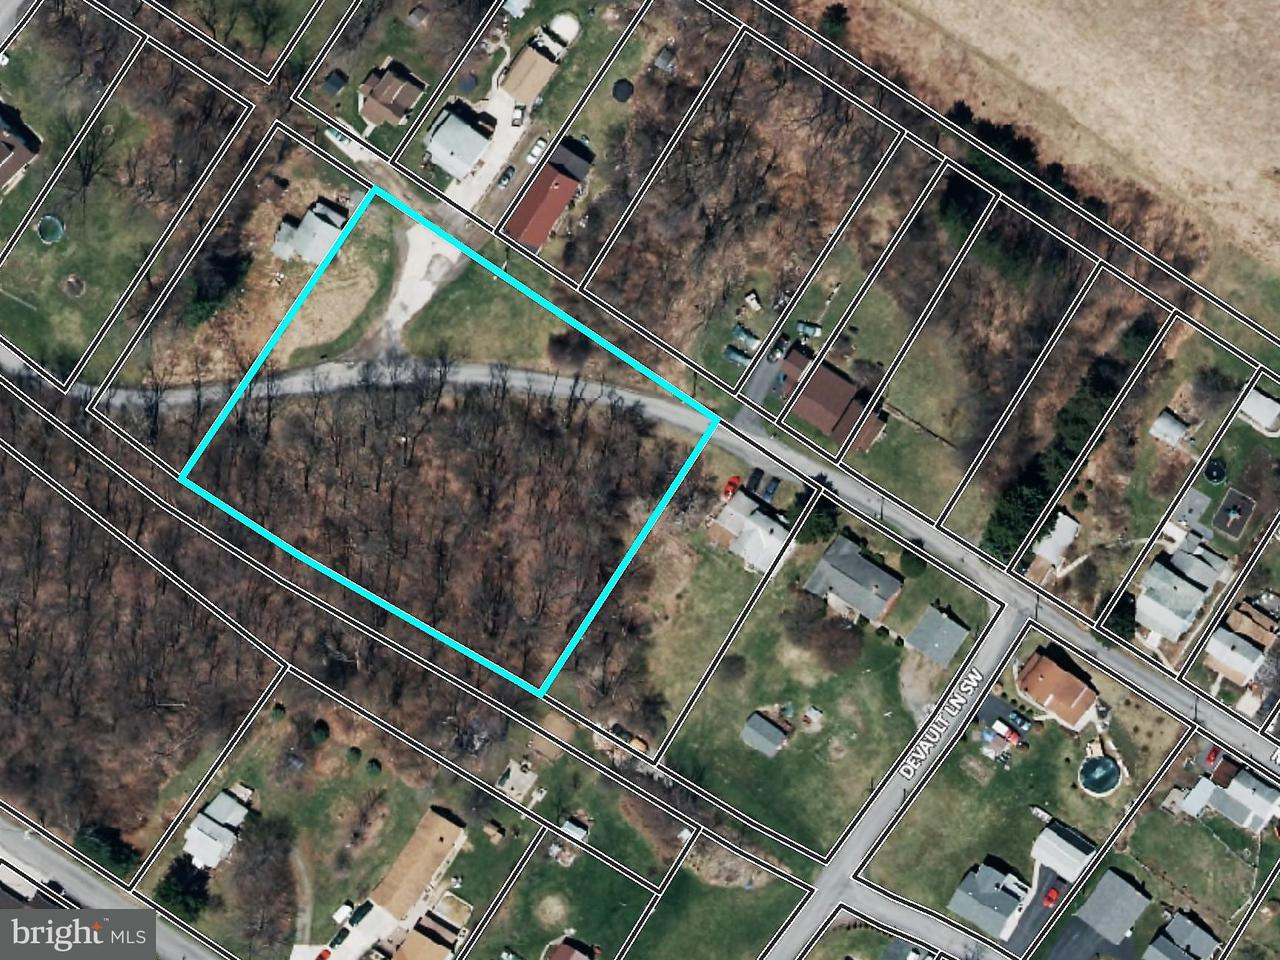 Land for Sale at Morgan St Midlothian, Maryland 21543 United States